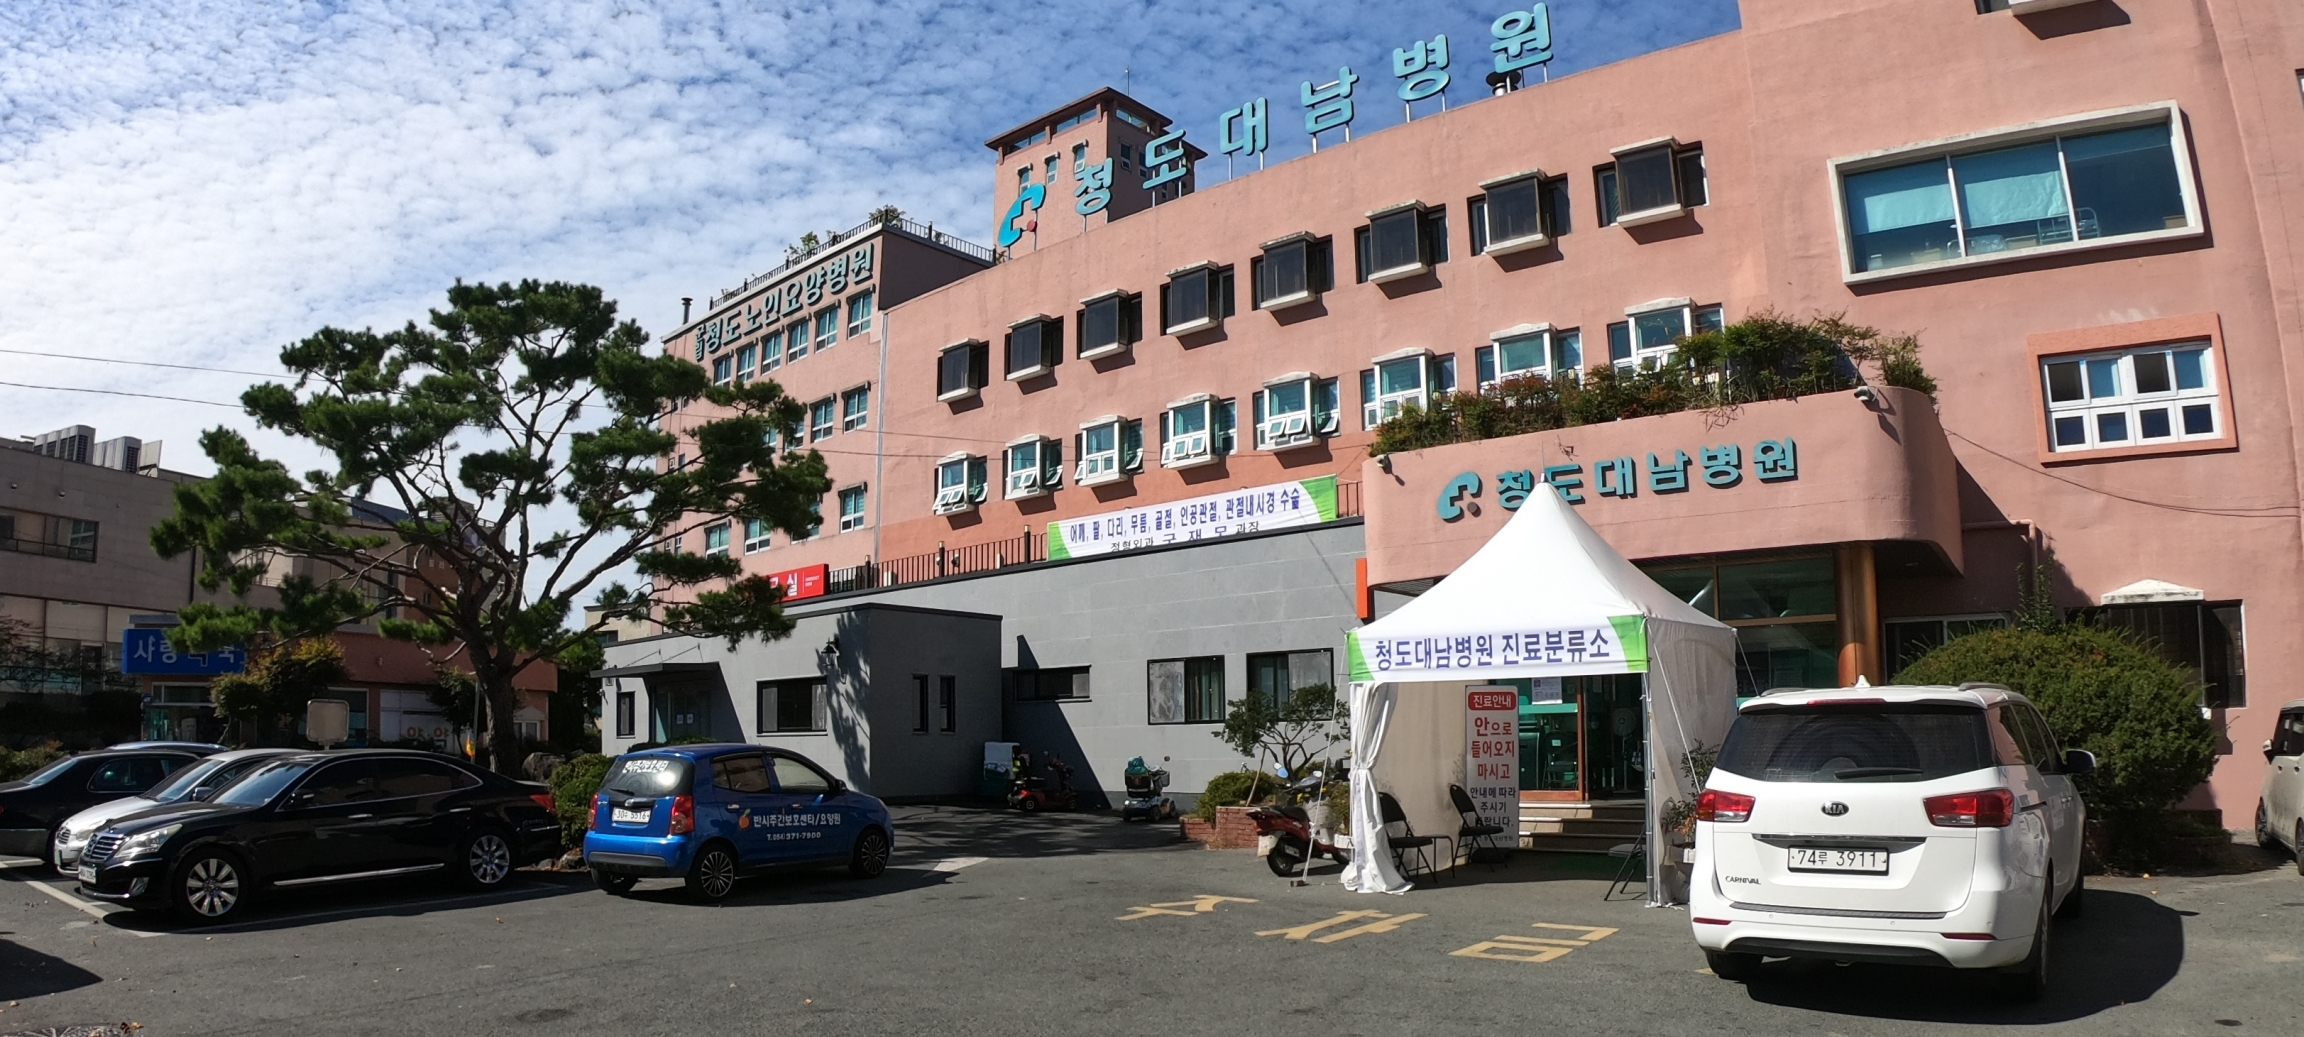 A deadly coronavirus outbreak inside a closed psychiatric ward at the Cheongdo Daenam Hospital in North Gyeongsang Province has increased calls for the deinstitutionalization of people with disabilities in South Korea.